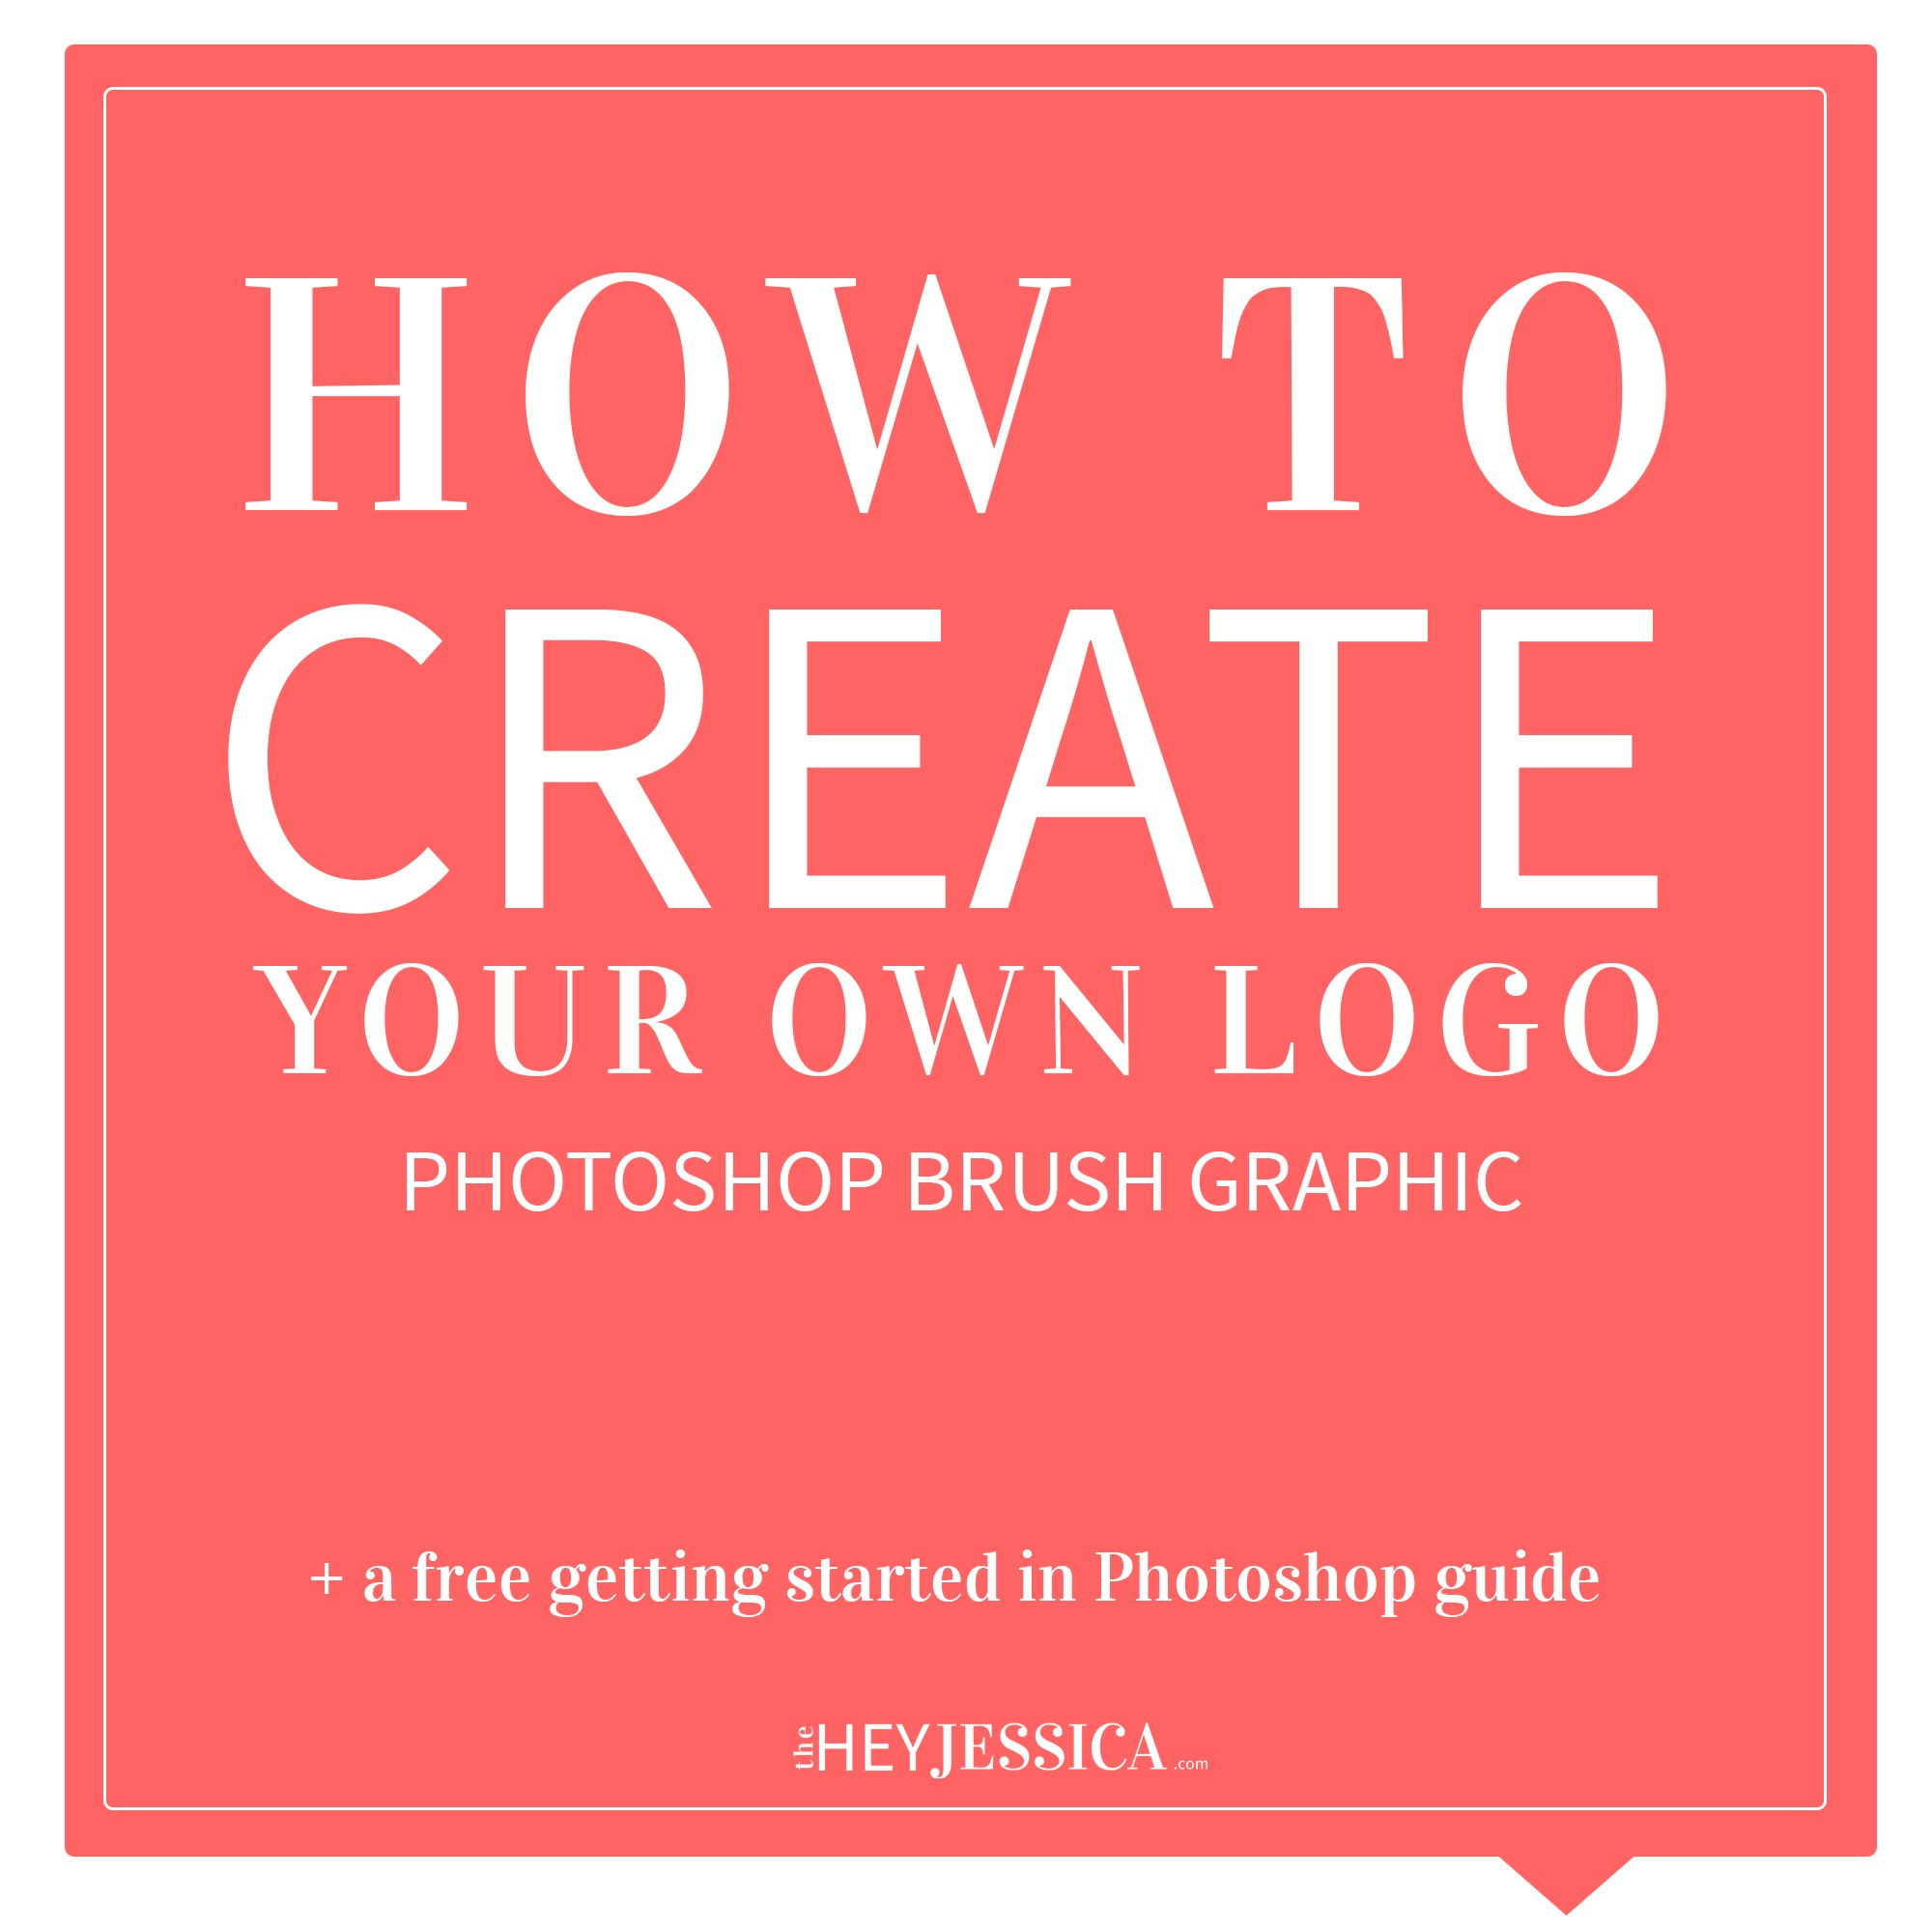 How to create a photoshop brush hey jessica for Create your own building